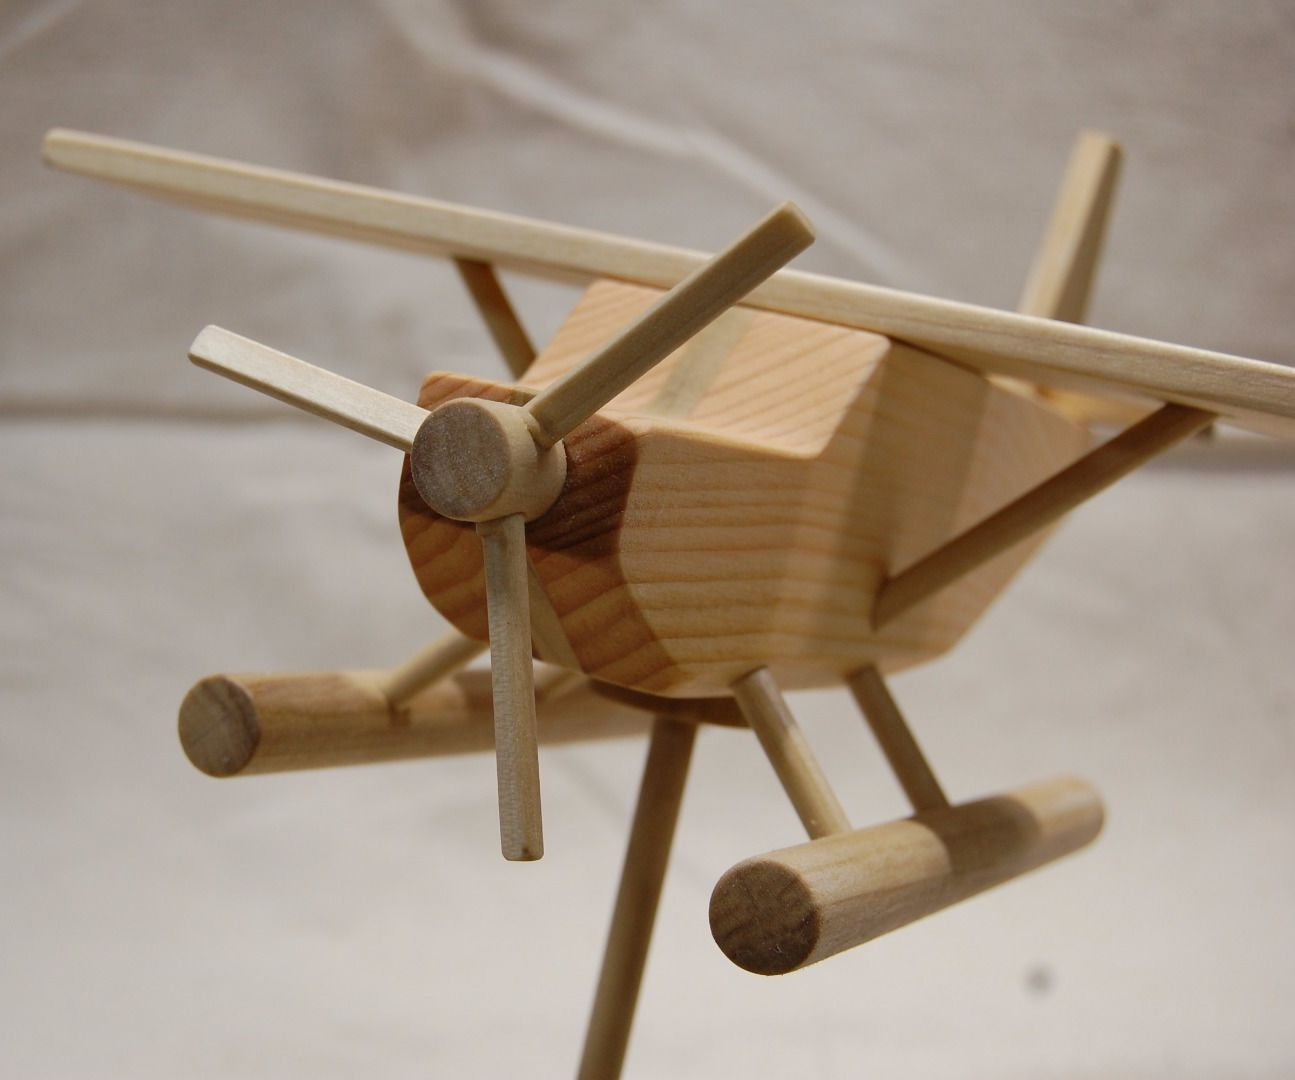 The Poplar and Plywood Plane